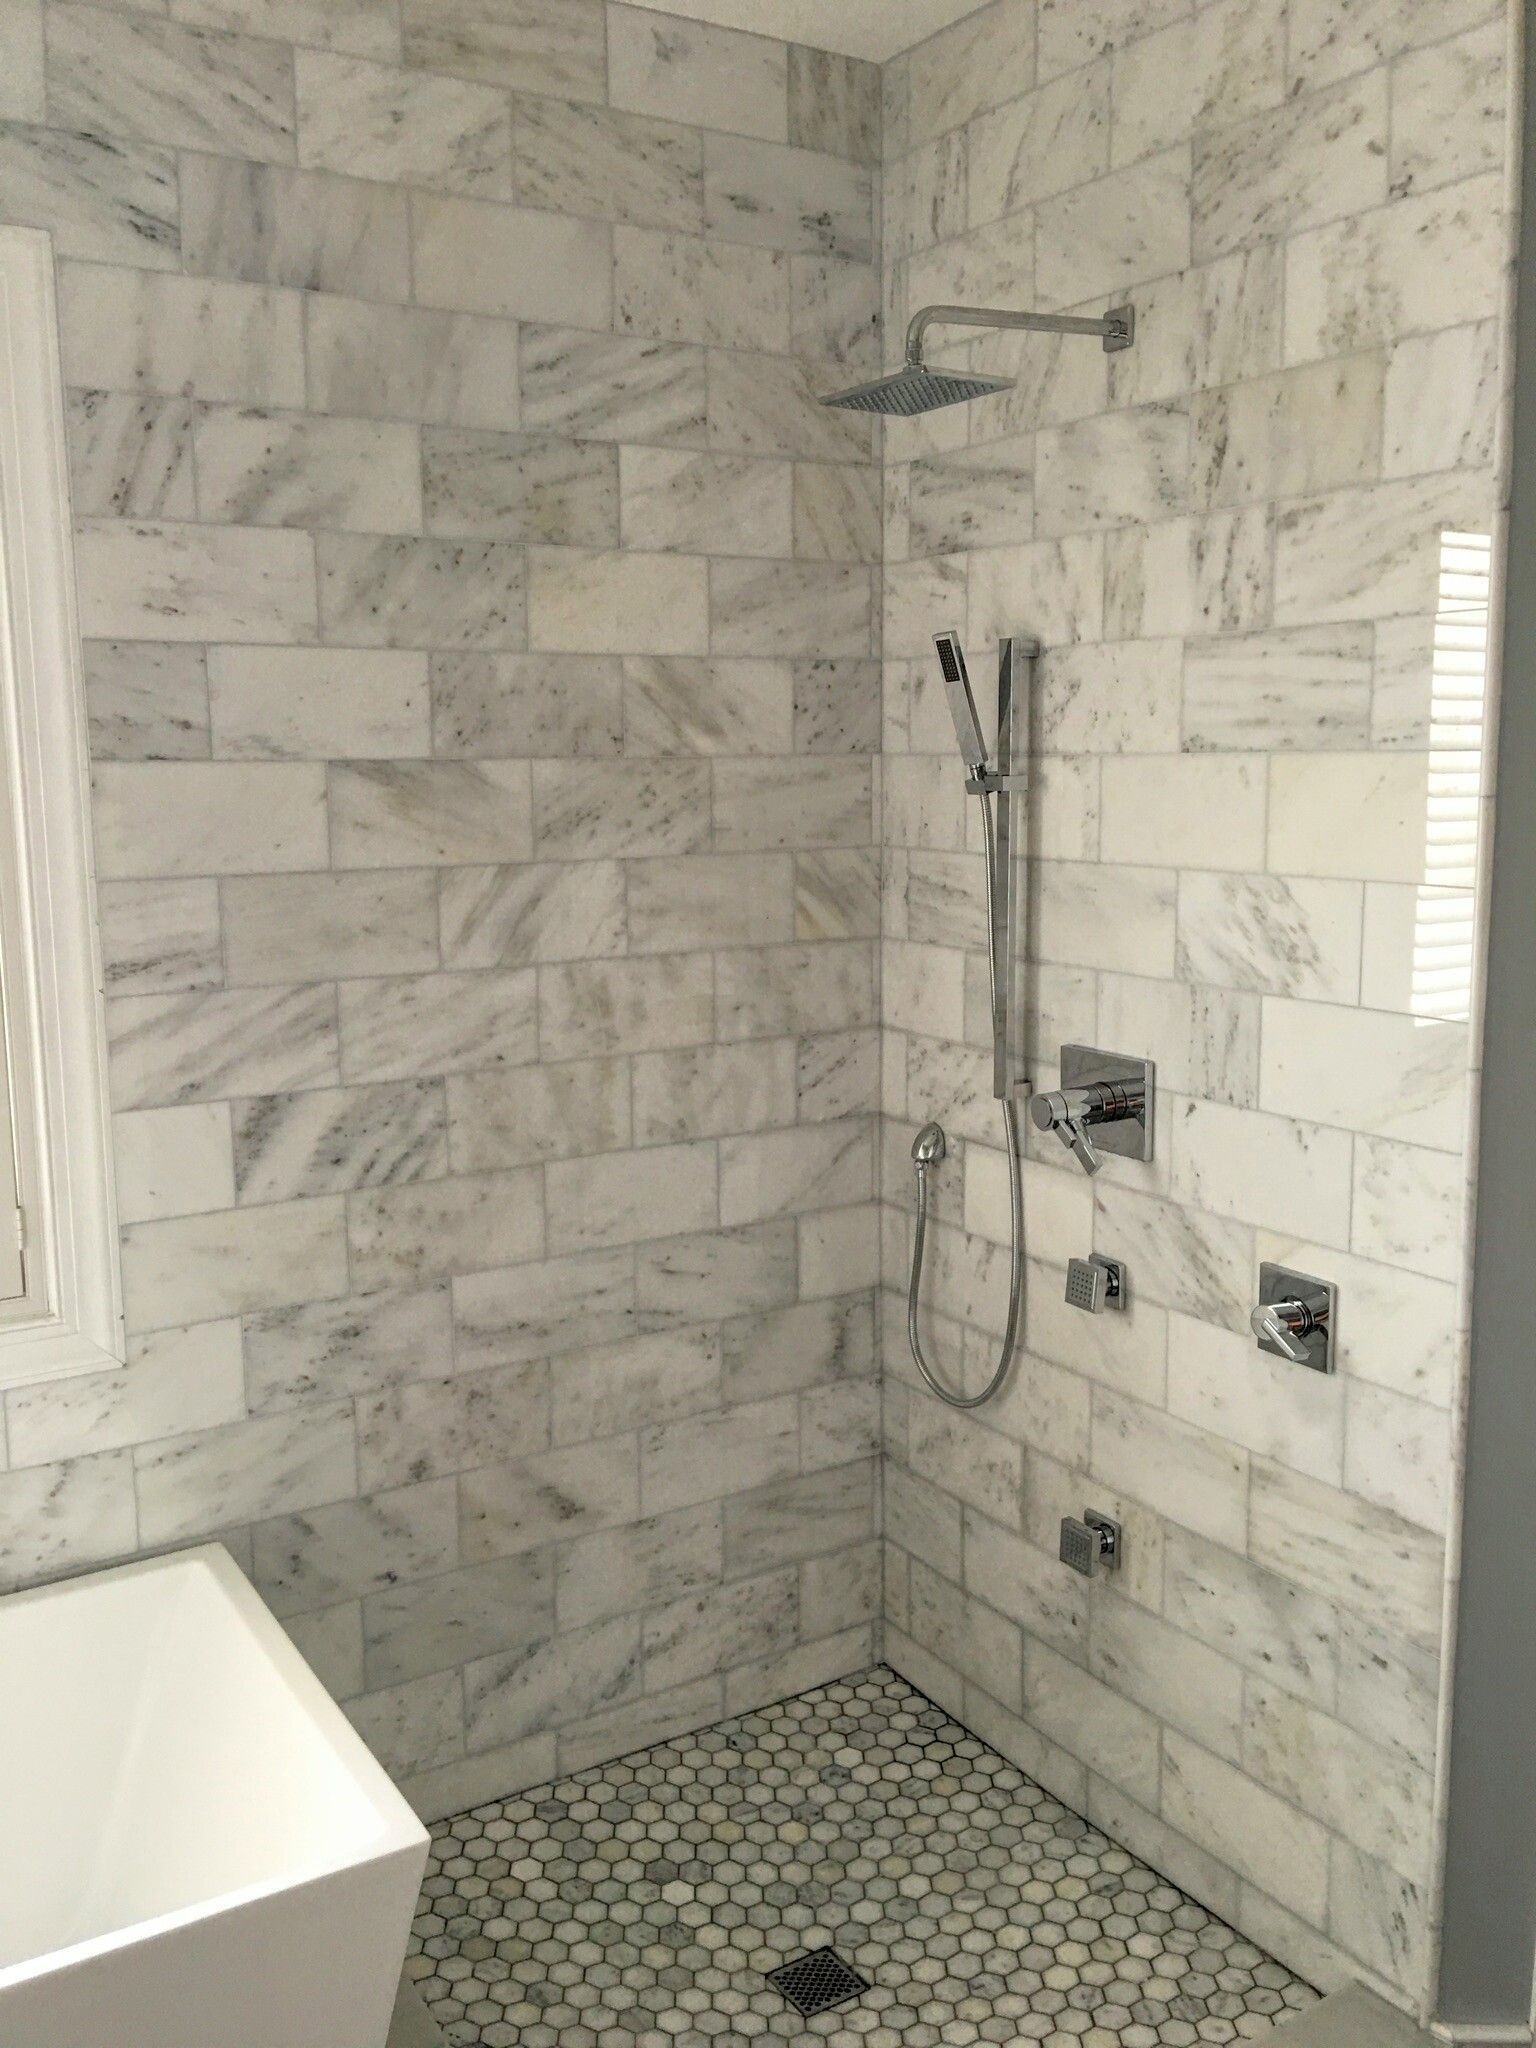 6x12 Bianco Carrara Marble Shower Polished Finish Floor Tile Design Bathroom Tile Installation Shower Wall Tile